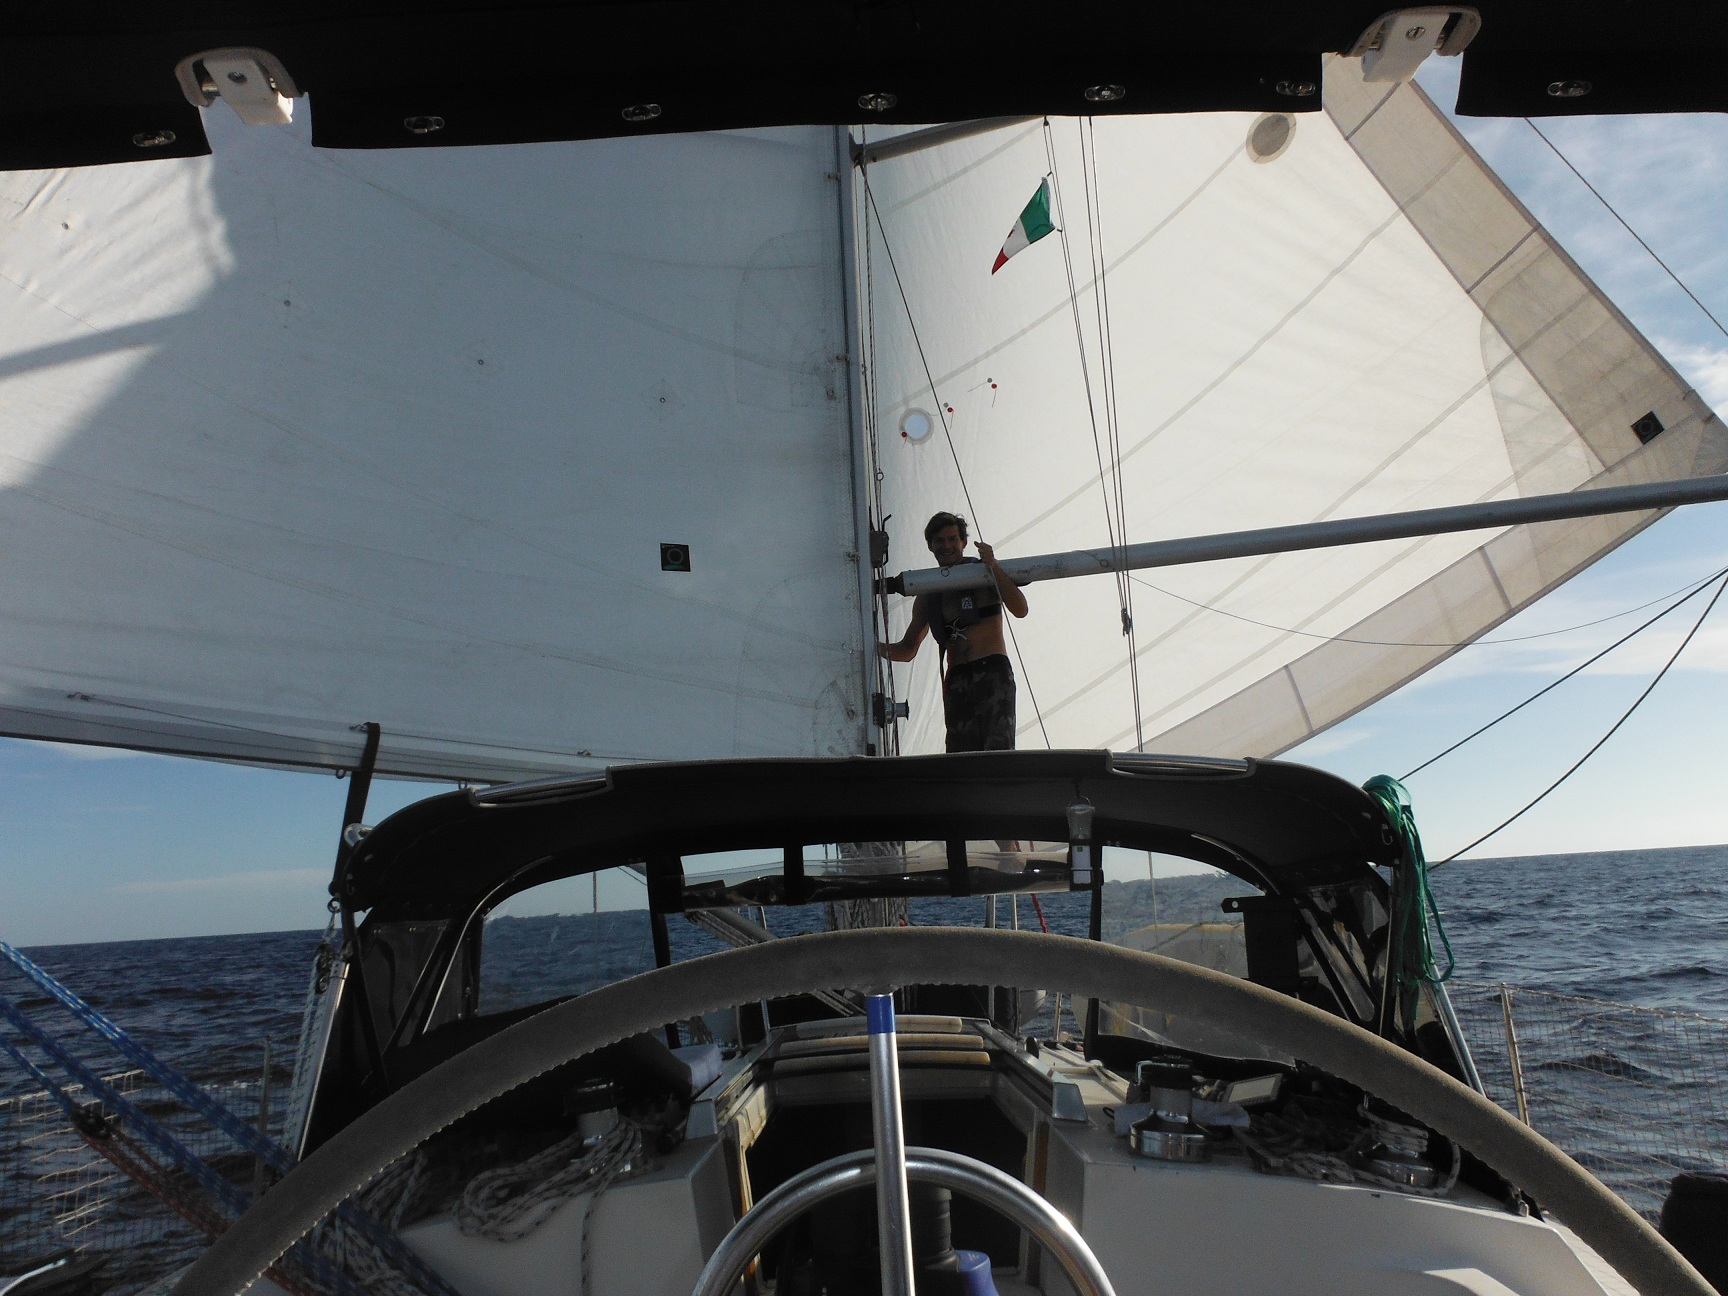 Downwind sailplan